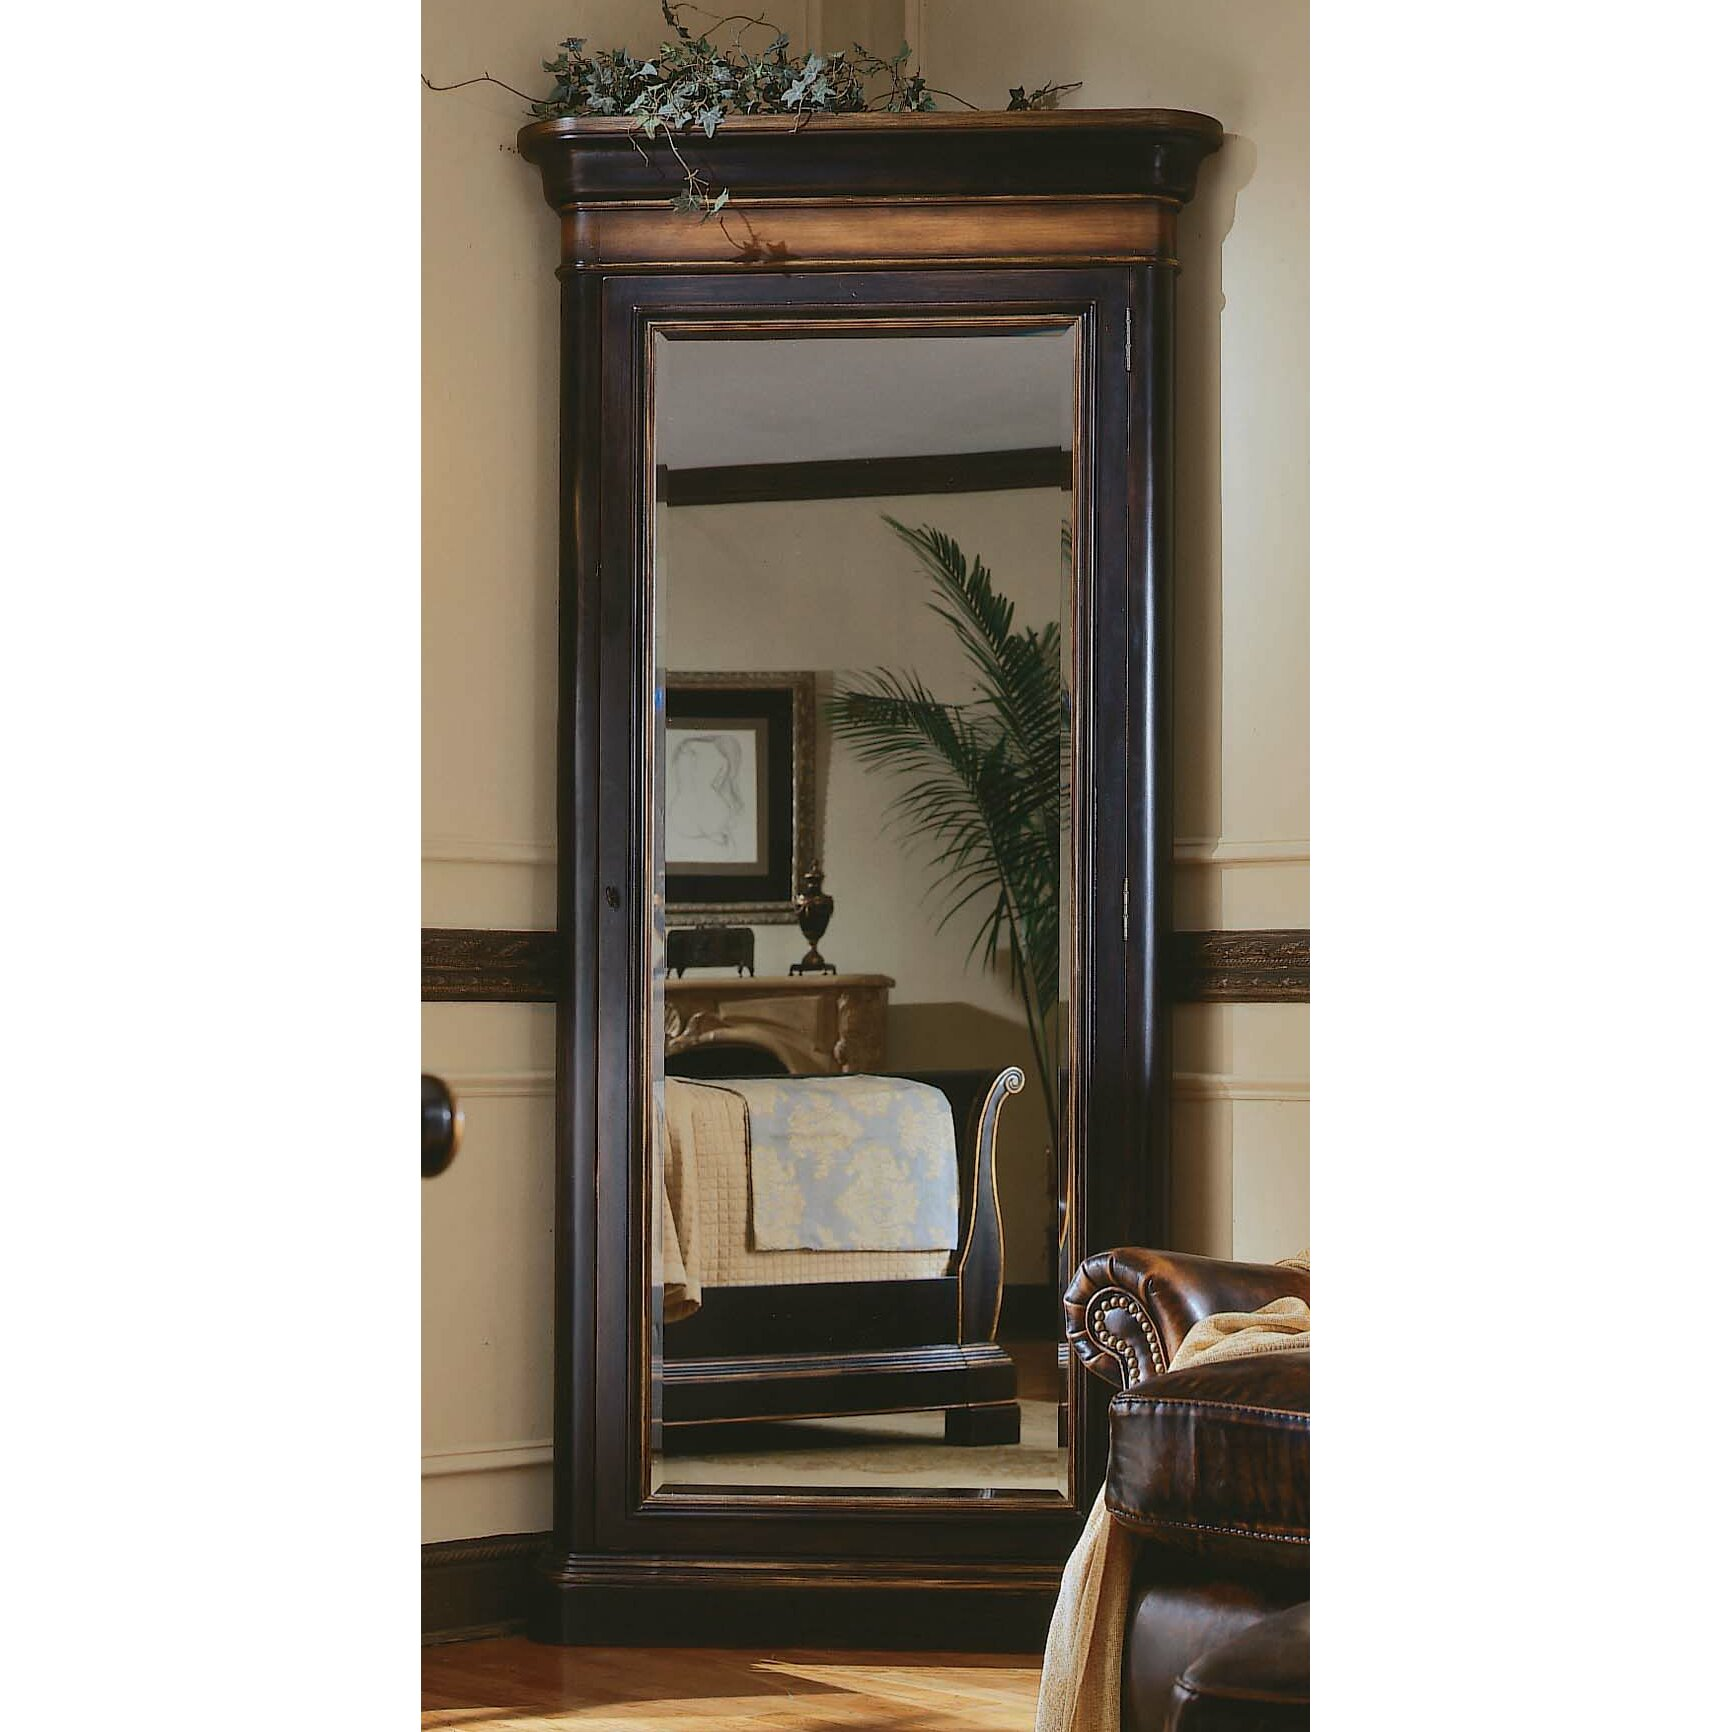 hooker furniture preston ridge floor mirror with jewelry armoire reviews wayfair. Black Bedroom Furniture Sets. Home Design Ideas